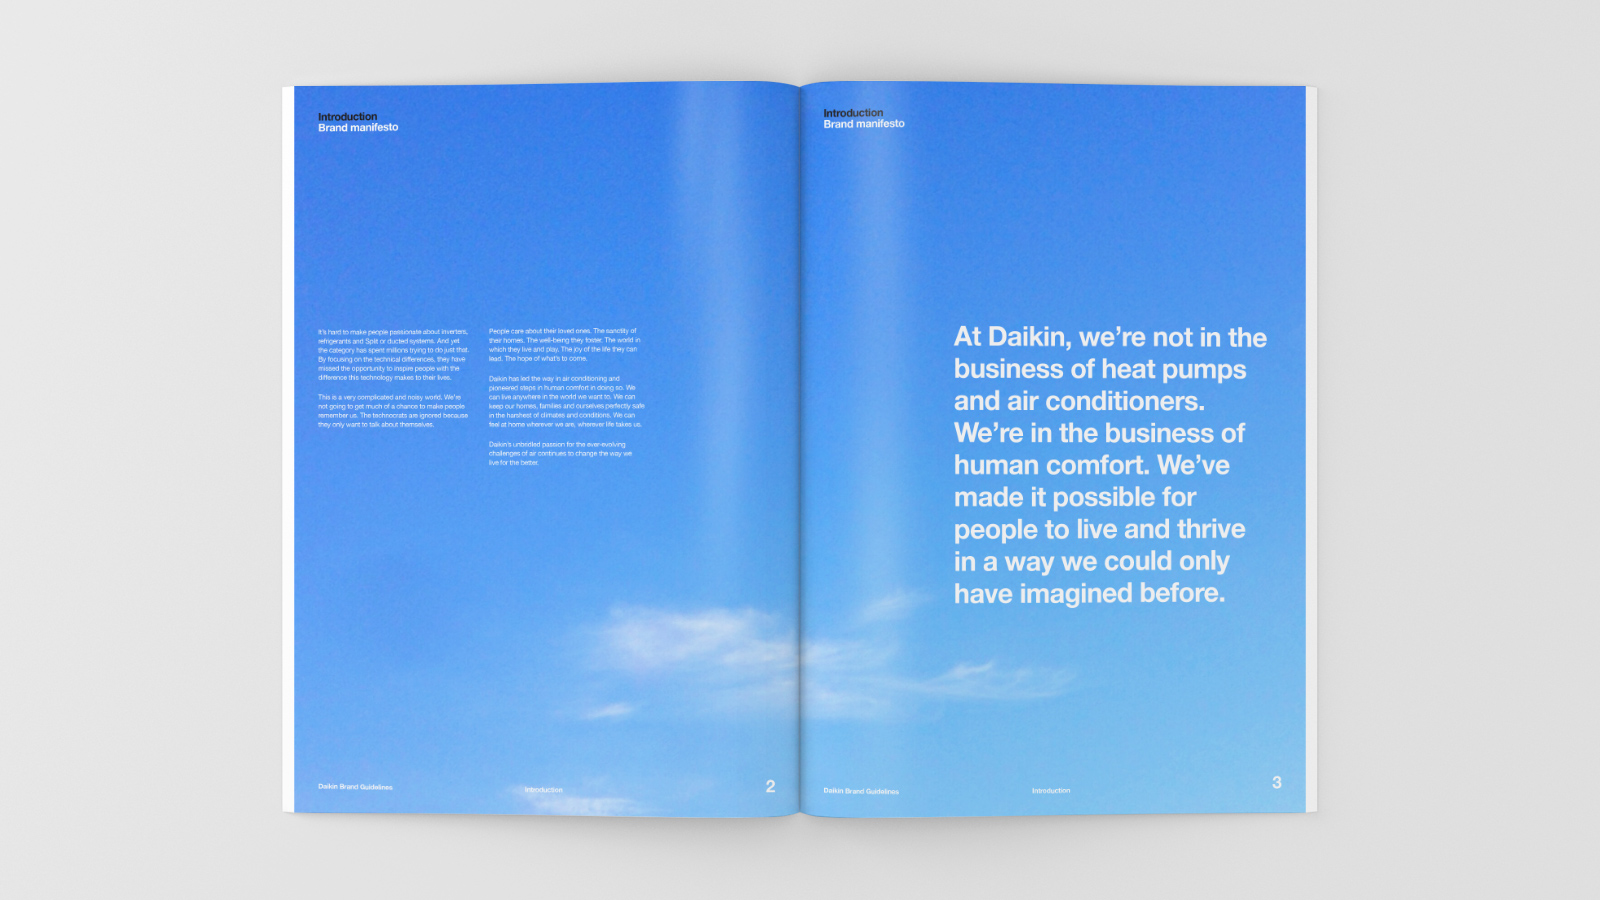 Daikin brand guidelines – introduction set against a clear sky